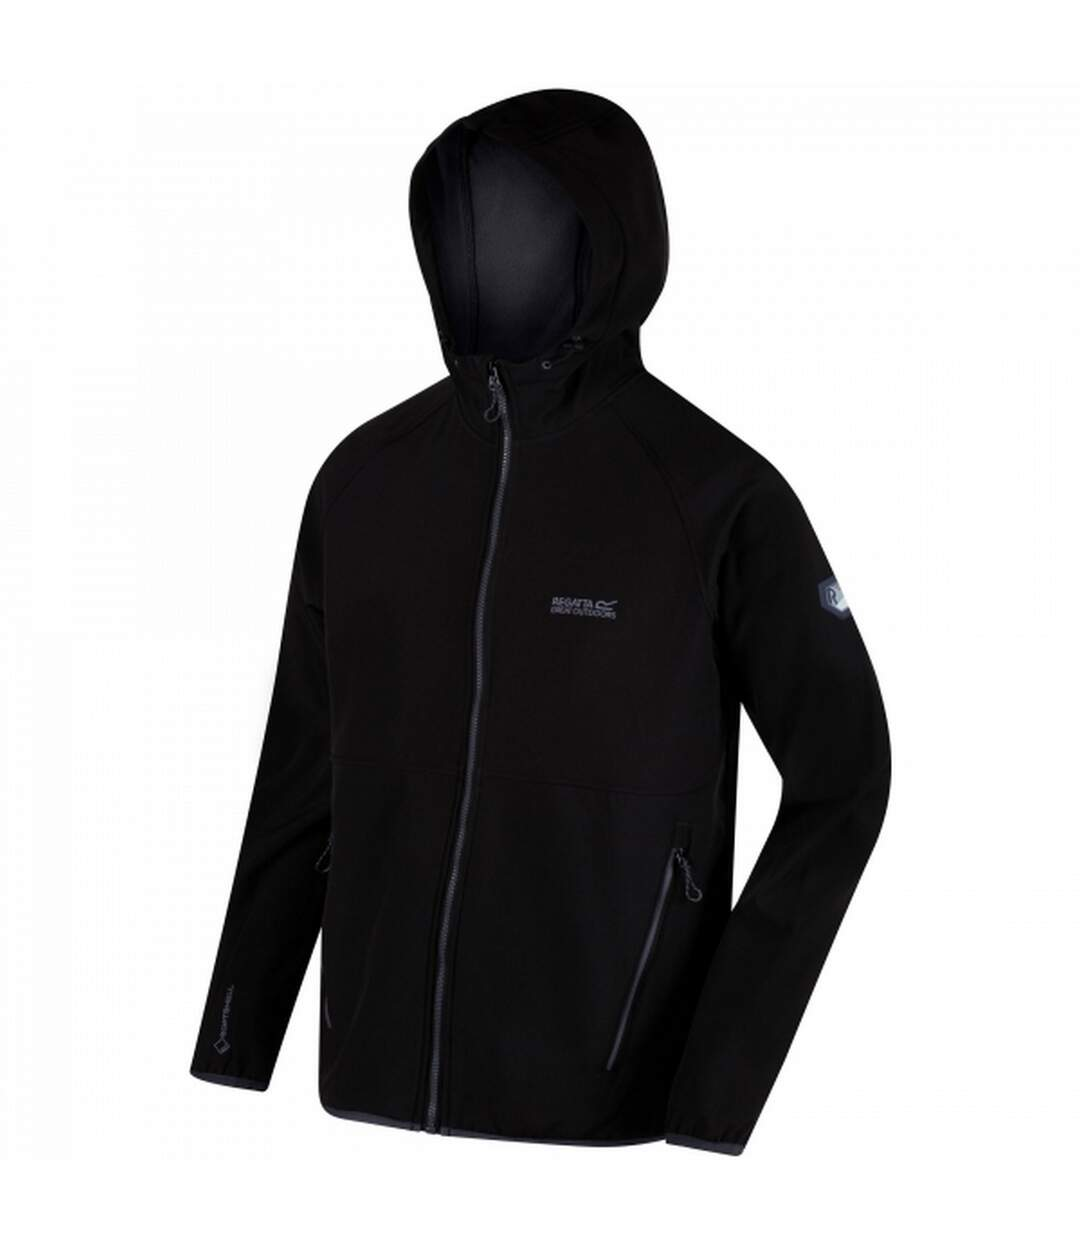 Regatta Mens Arec II Hooded Jacket (Black/Seal Grey) - UTRG3464